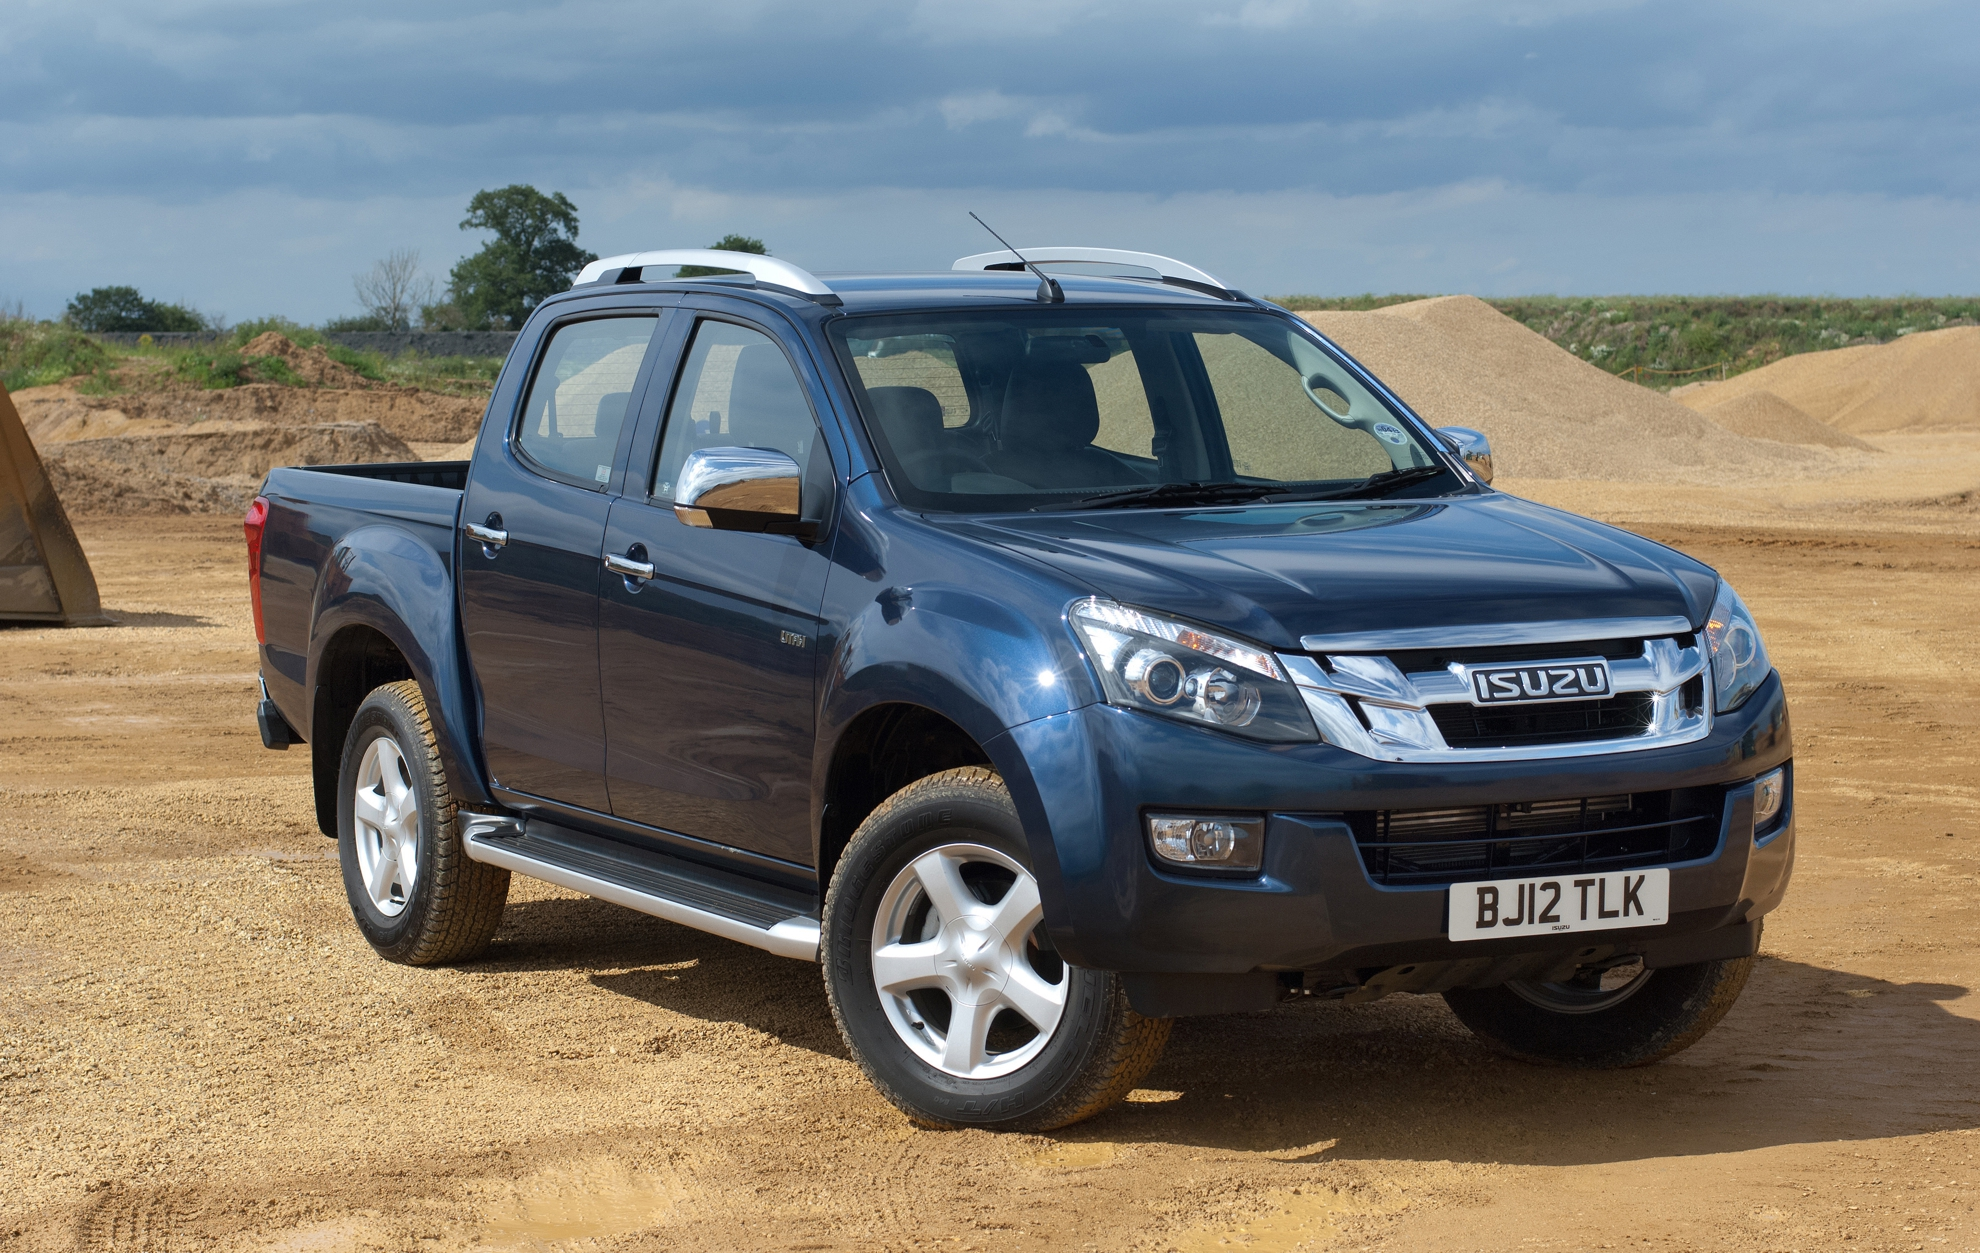 hight resolution of stephen briers fleet news editor commented the d max s five year 125 000 mile warranty and two year service plus competitive running costs swayed the